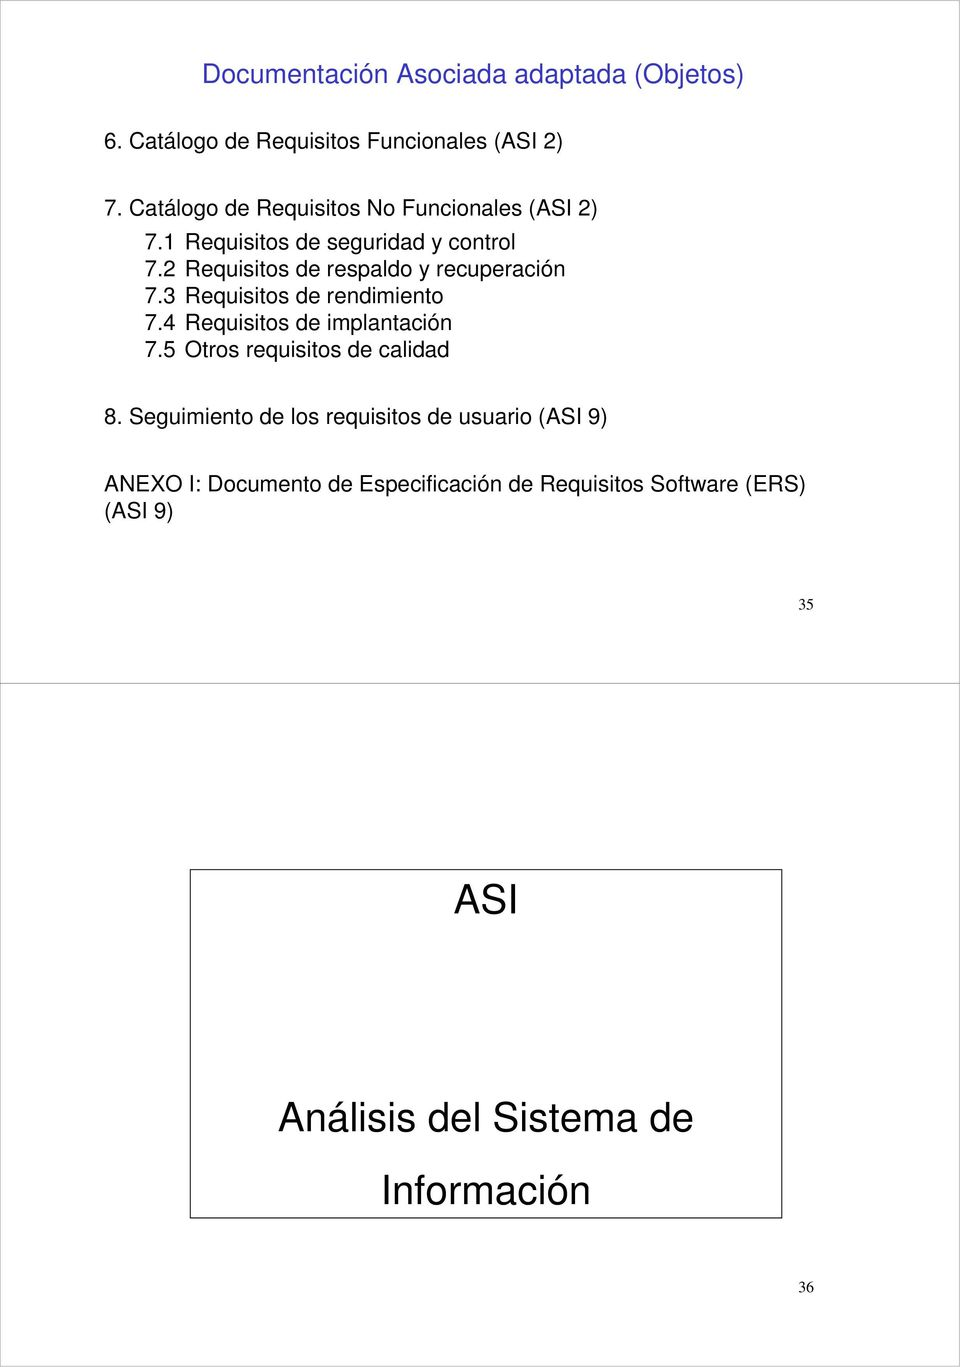 2 Requisitos de respaldo y recuperación 7.3 Requisitos de rendimiento 7.4 Requisitos de implantación 7.